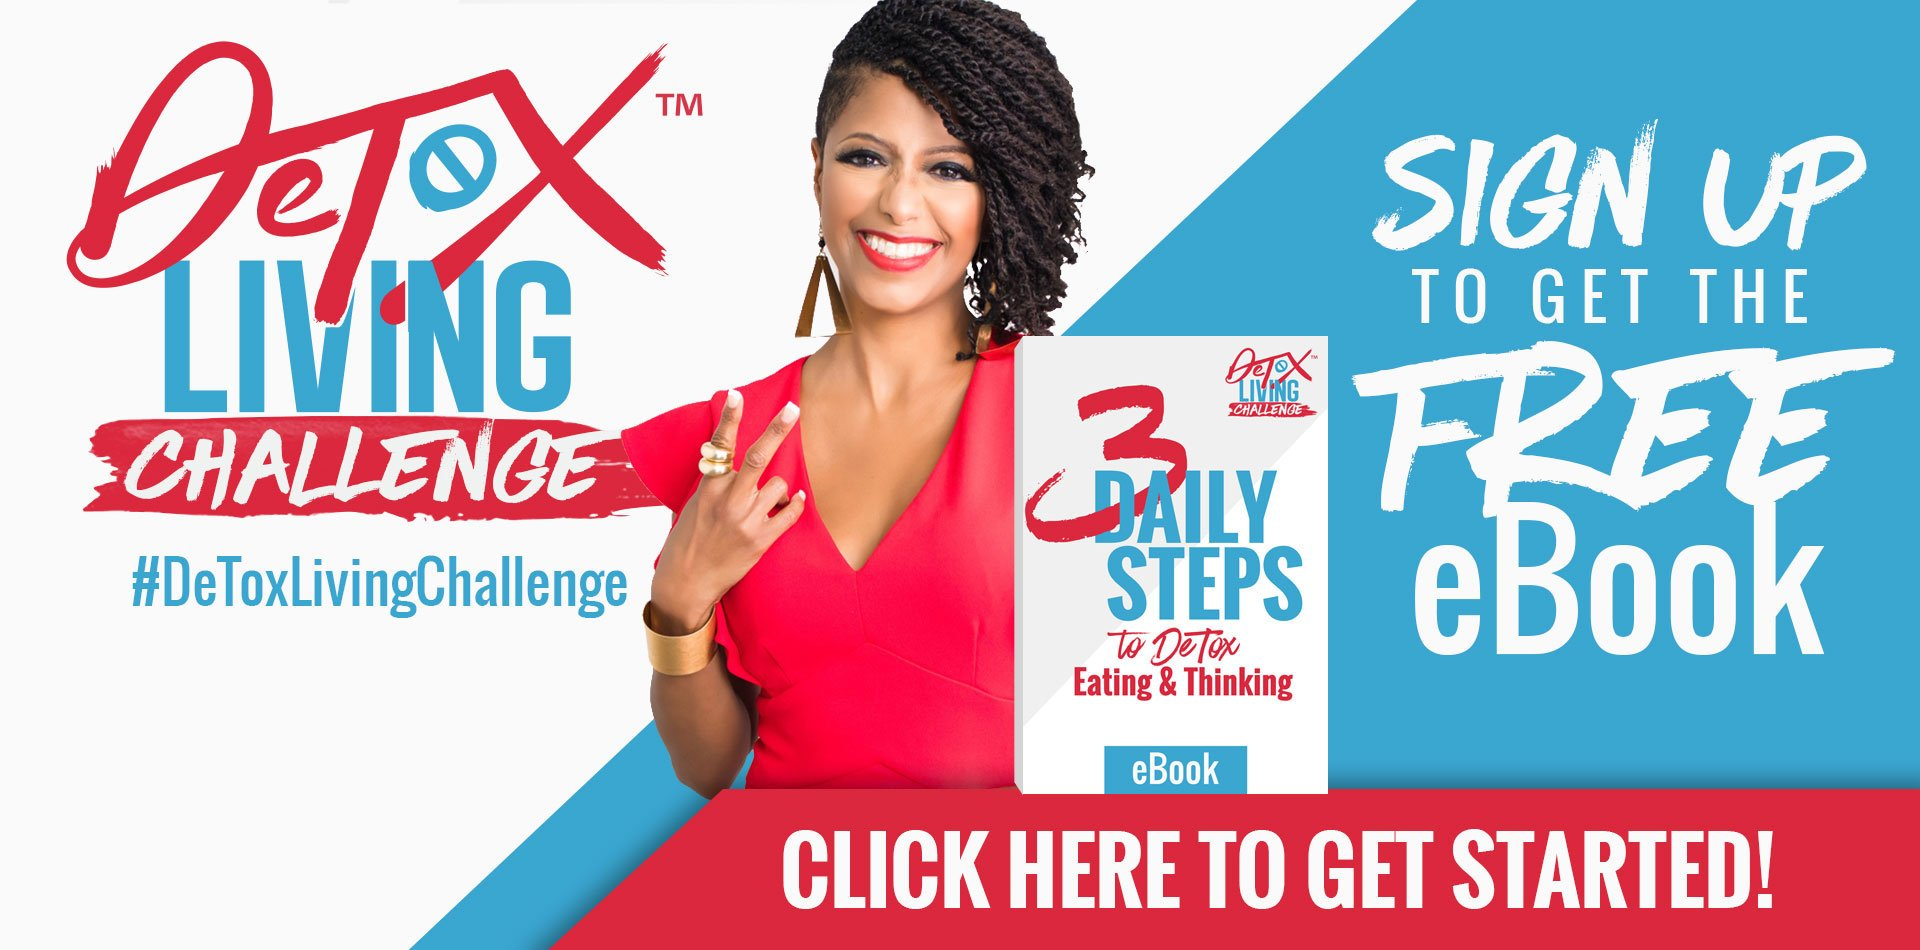 Start your journey to healing with our Free DeTox Living Challenge